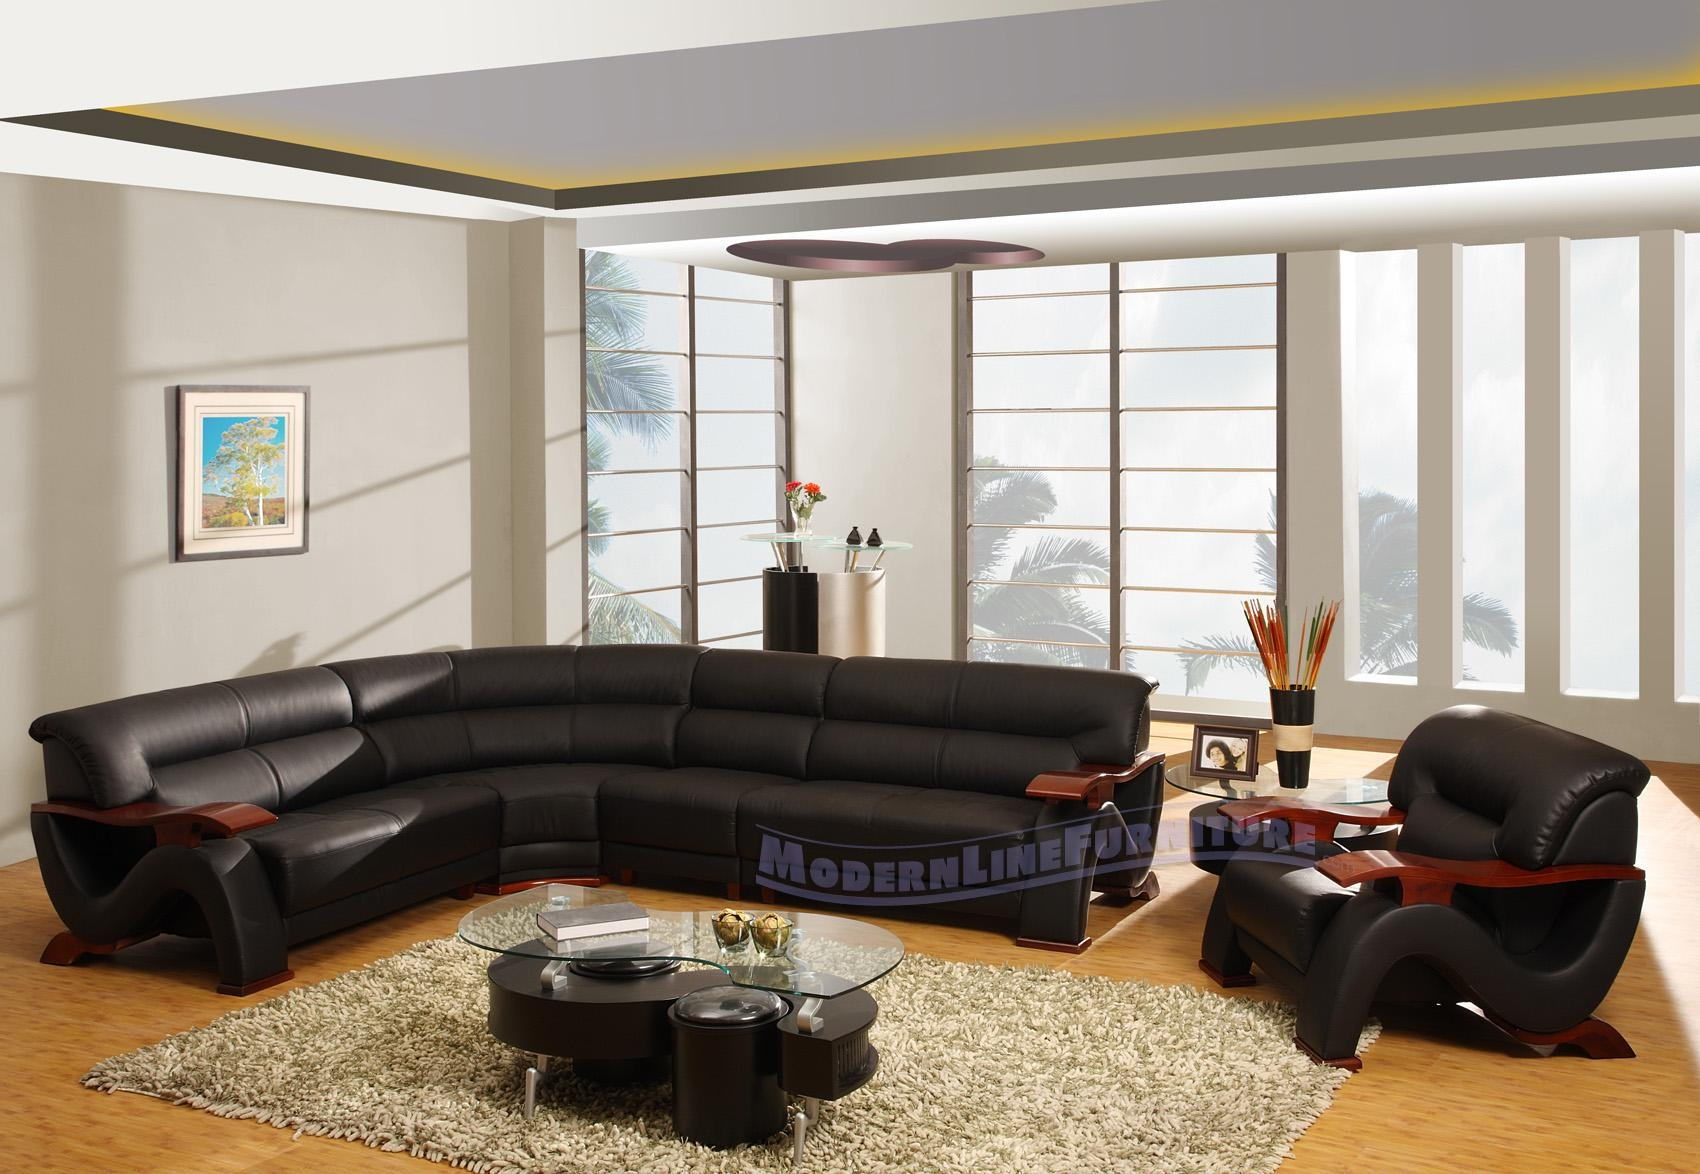 Modern Line Furniture – Commercial Furniture – Custom Made In Coffee Table For Sectional Sofa (Image 14 of 15)